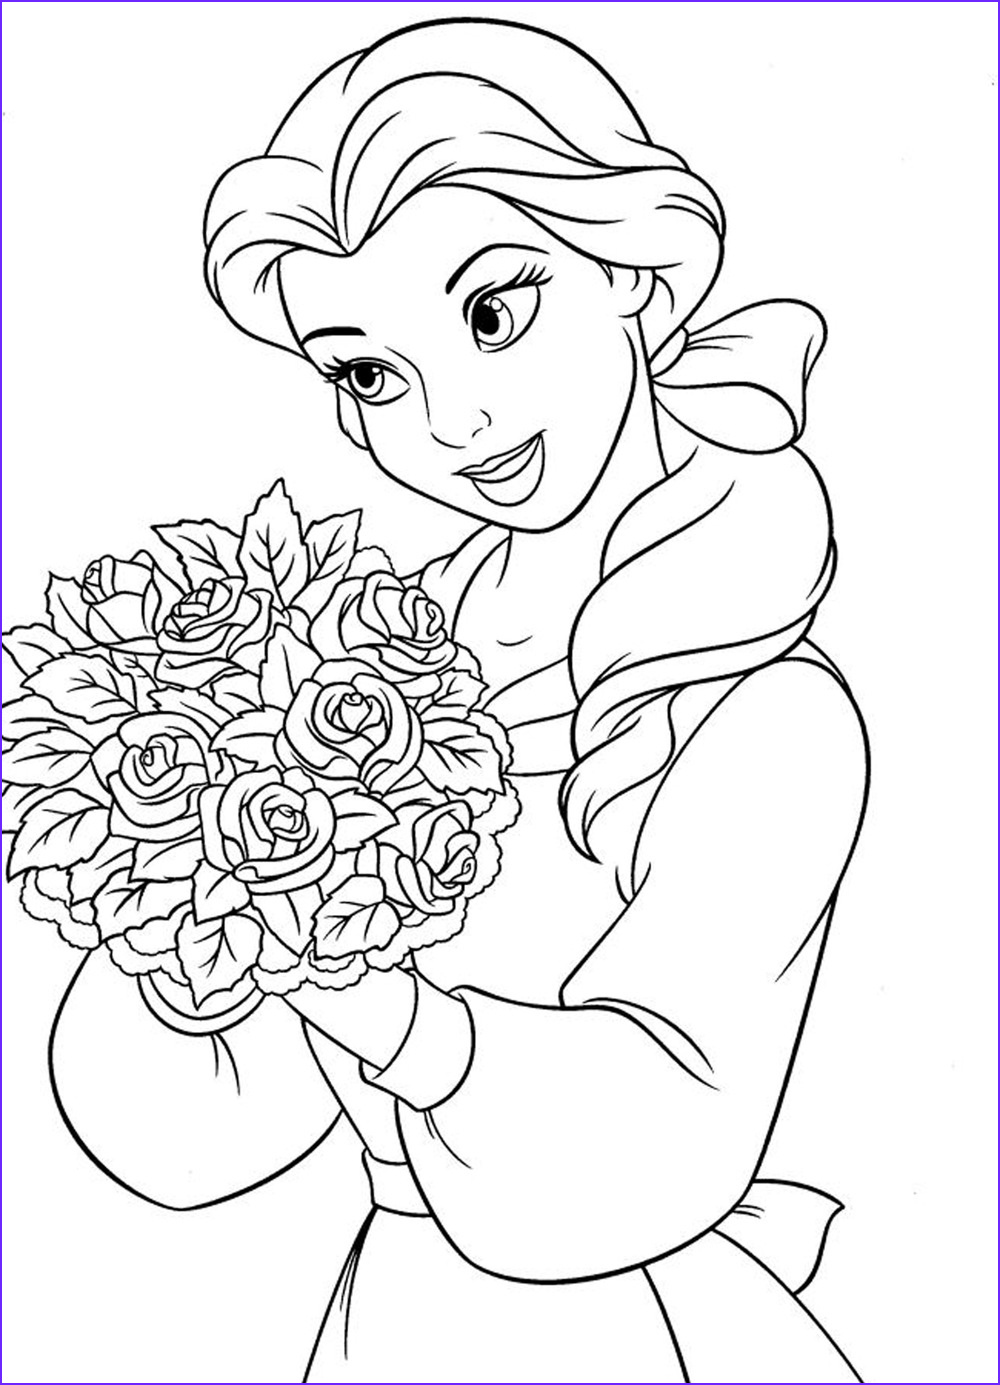 Coloring Books Luxury Stock Disney Princess Coloring Book – Arisbeth Cruz Hernandez